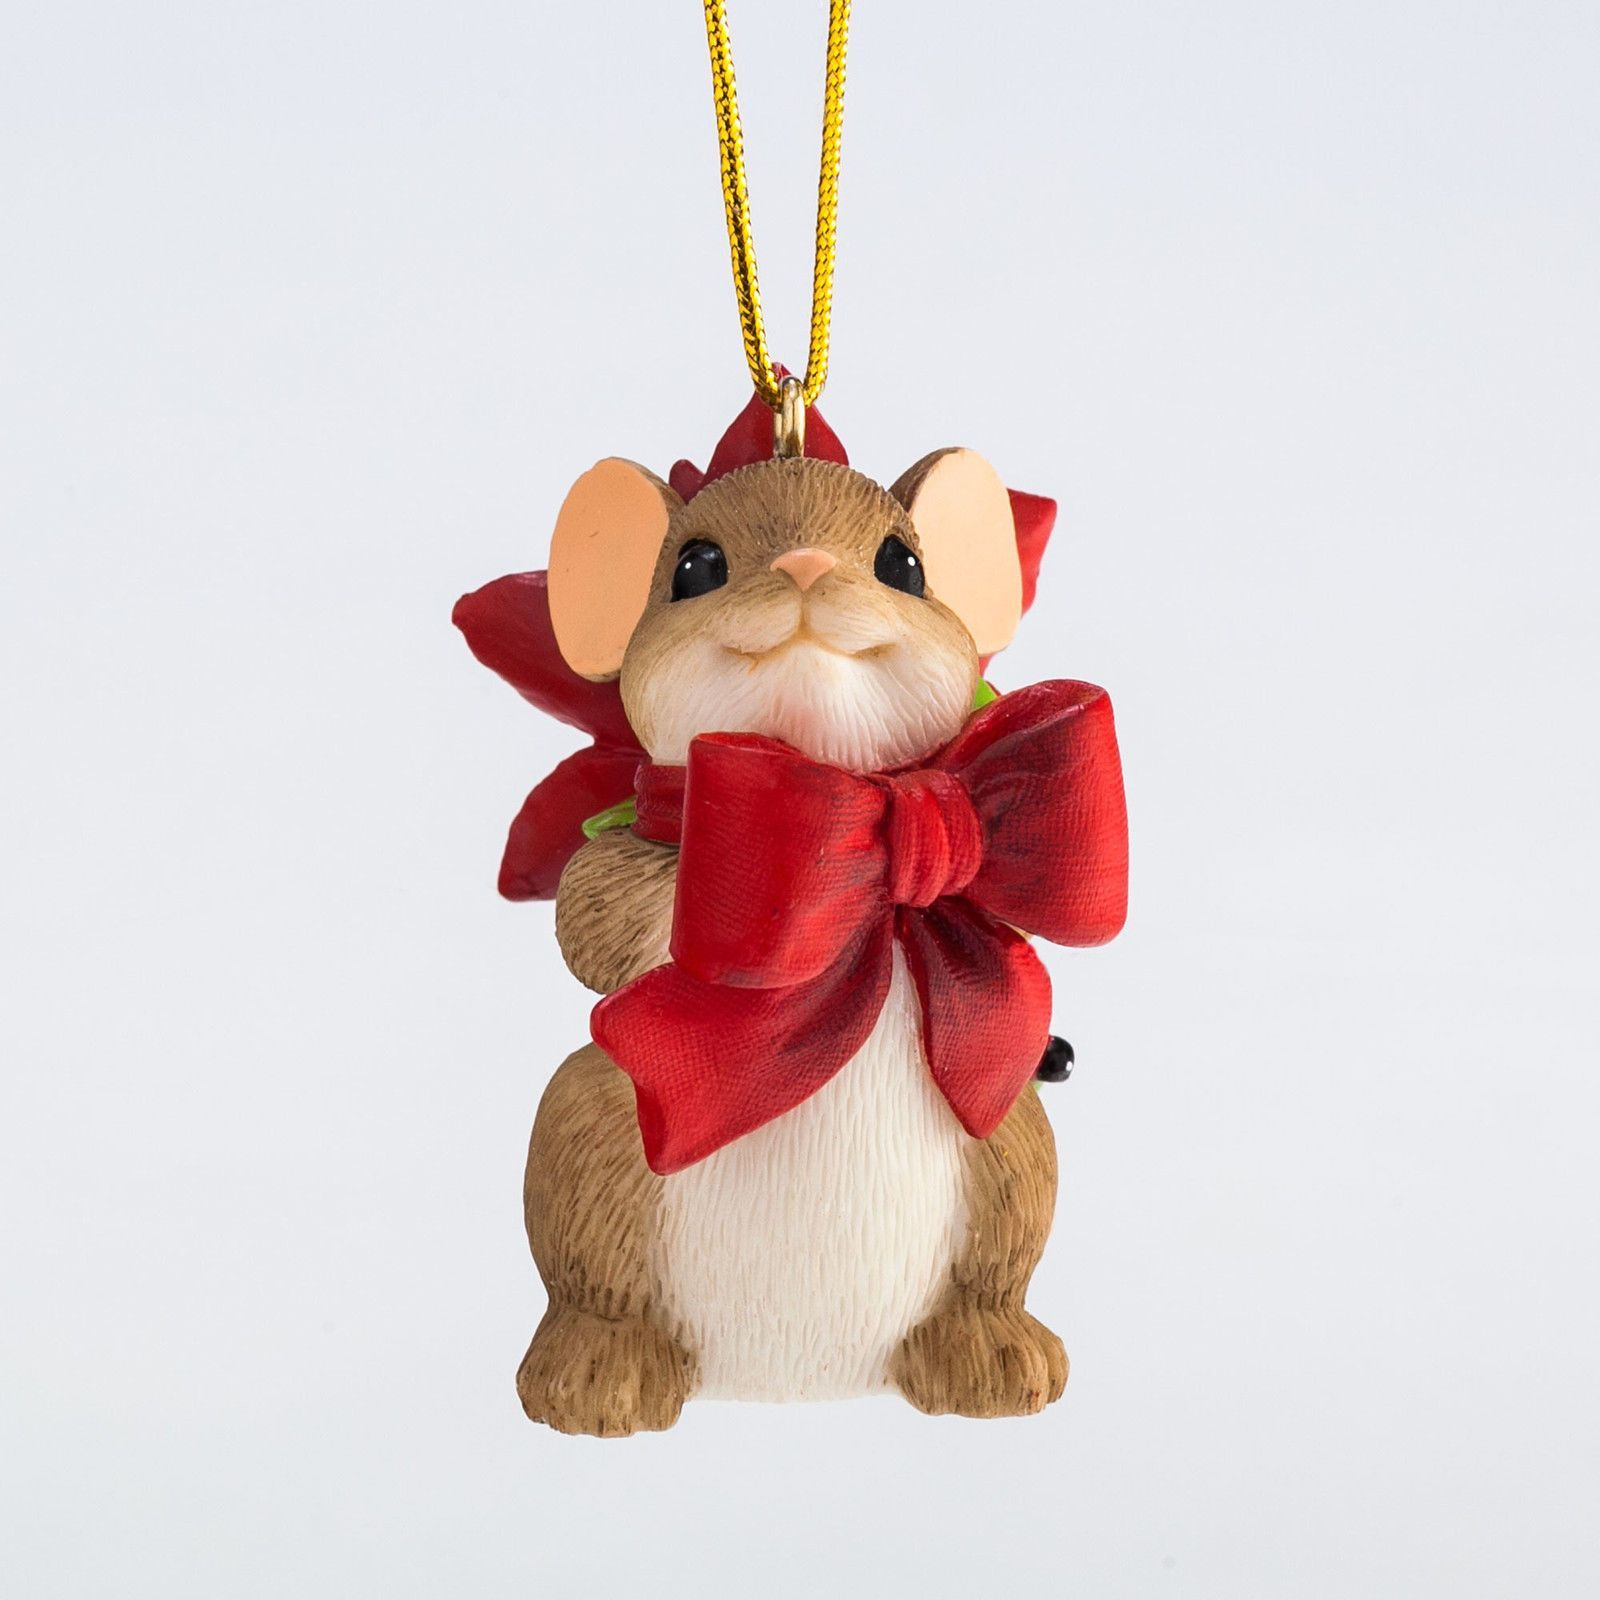 Charming Tails Pretty Little Gift Mouse Ornament 4046958